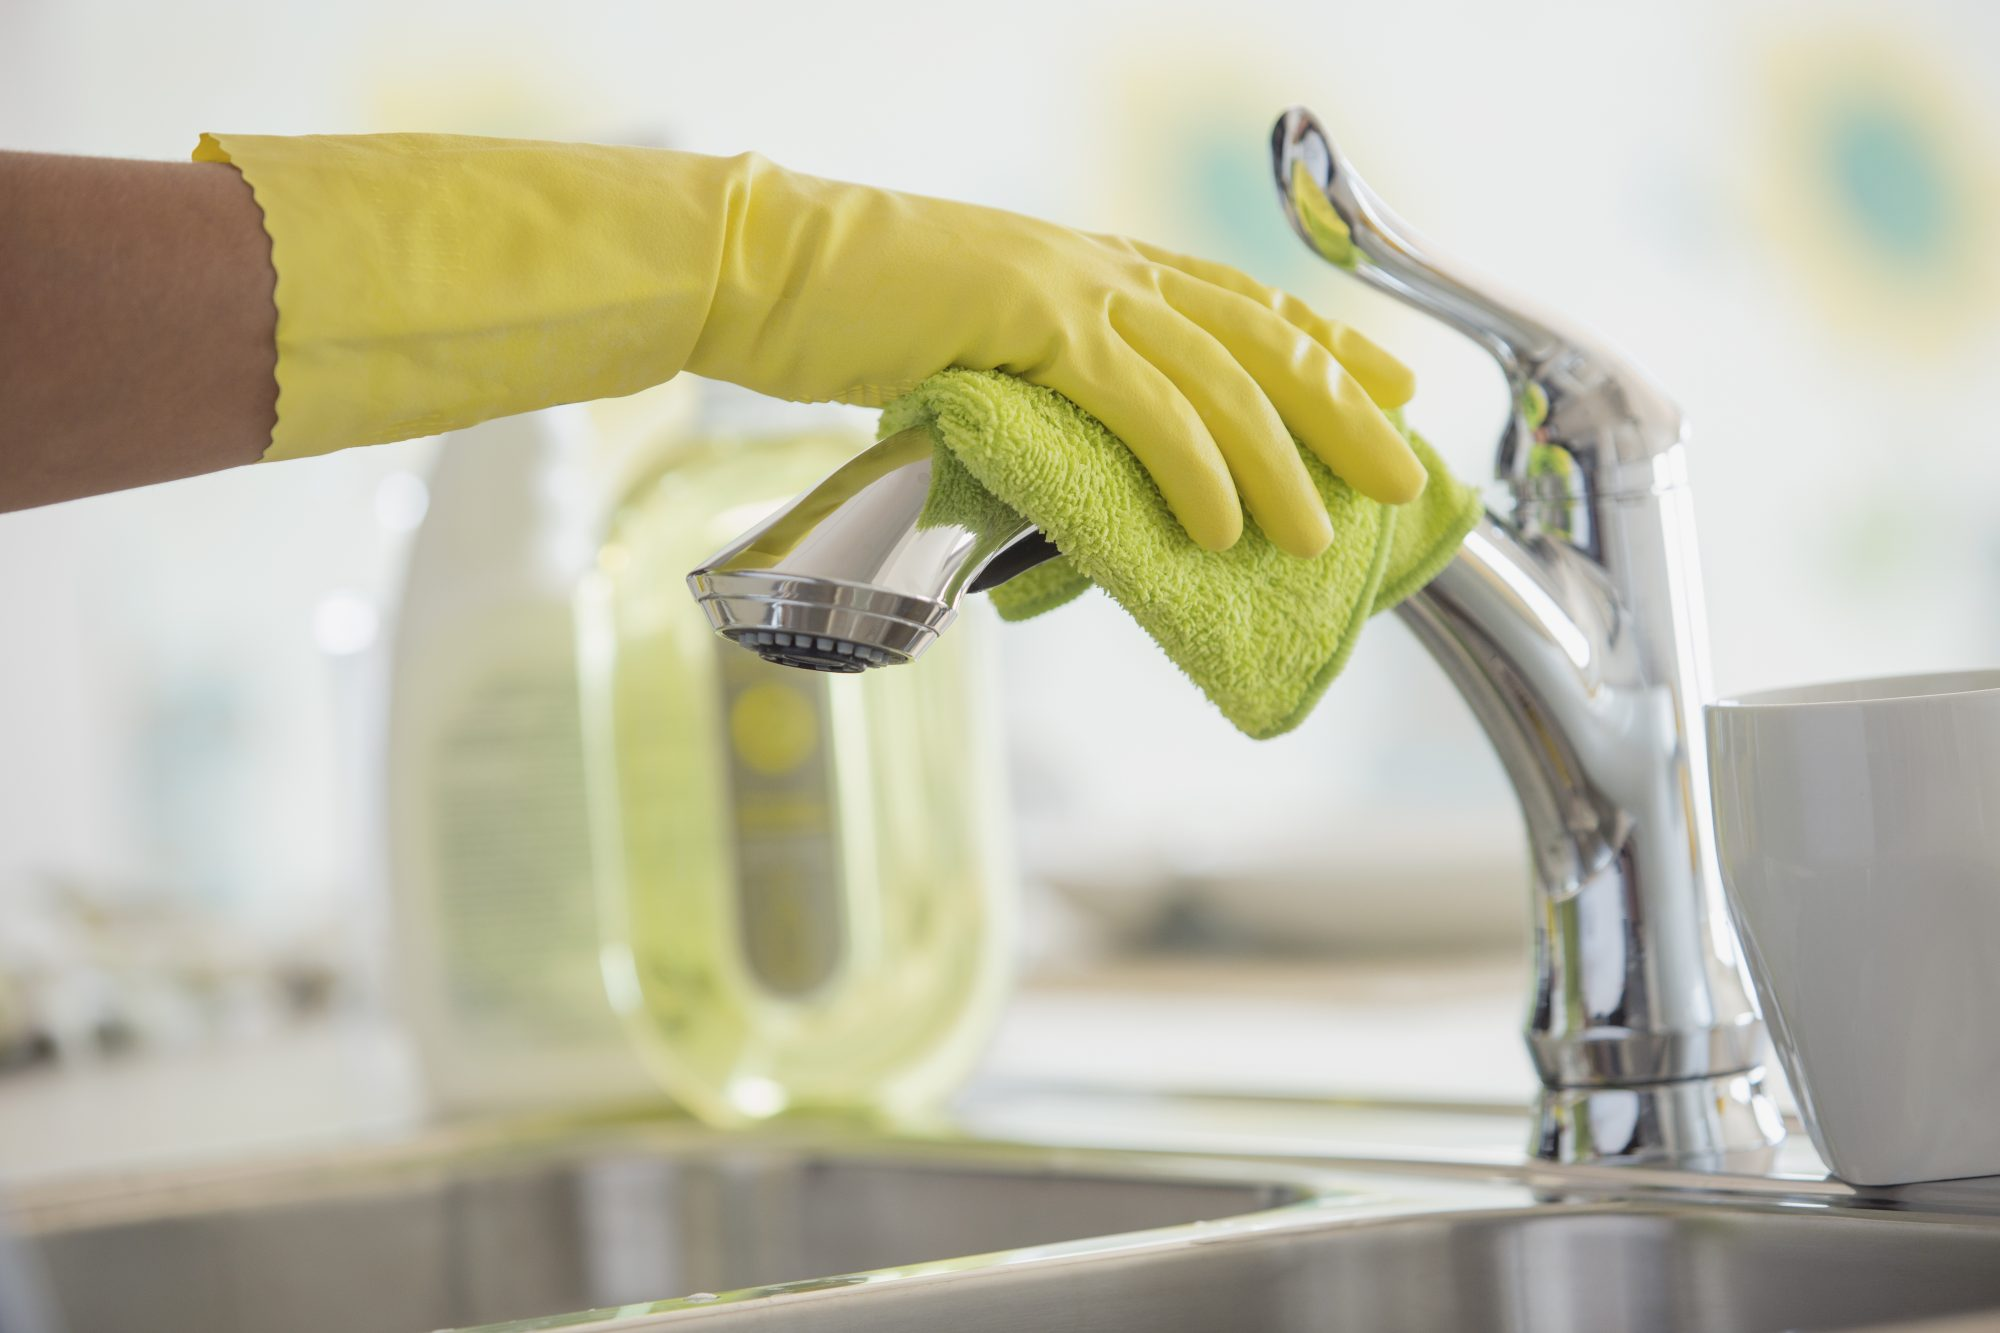 11 Kitchen ThingsYou Need to Clean ASAP